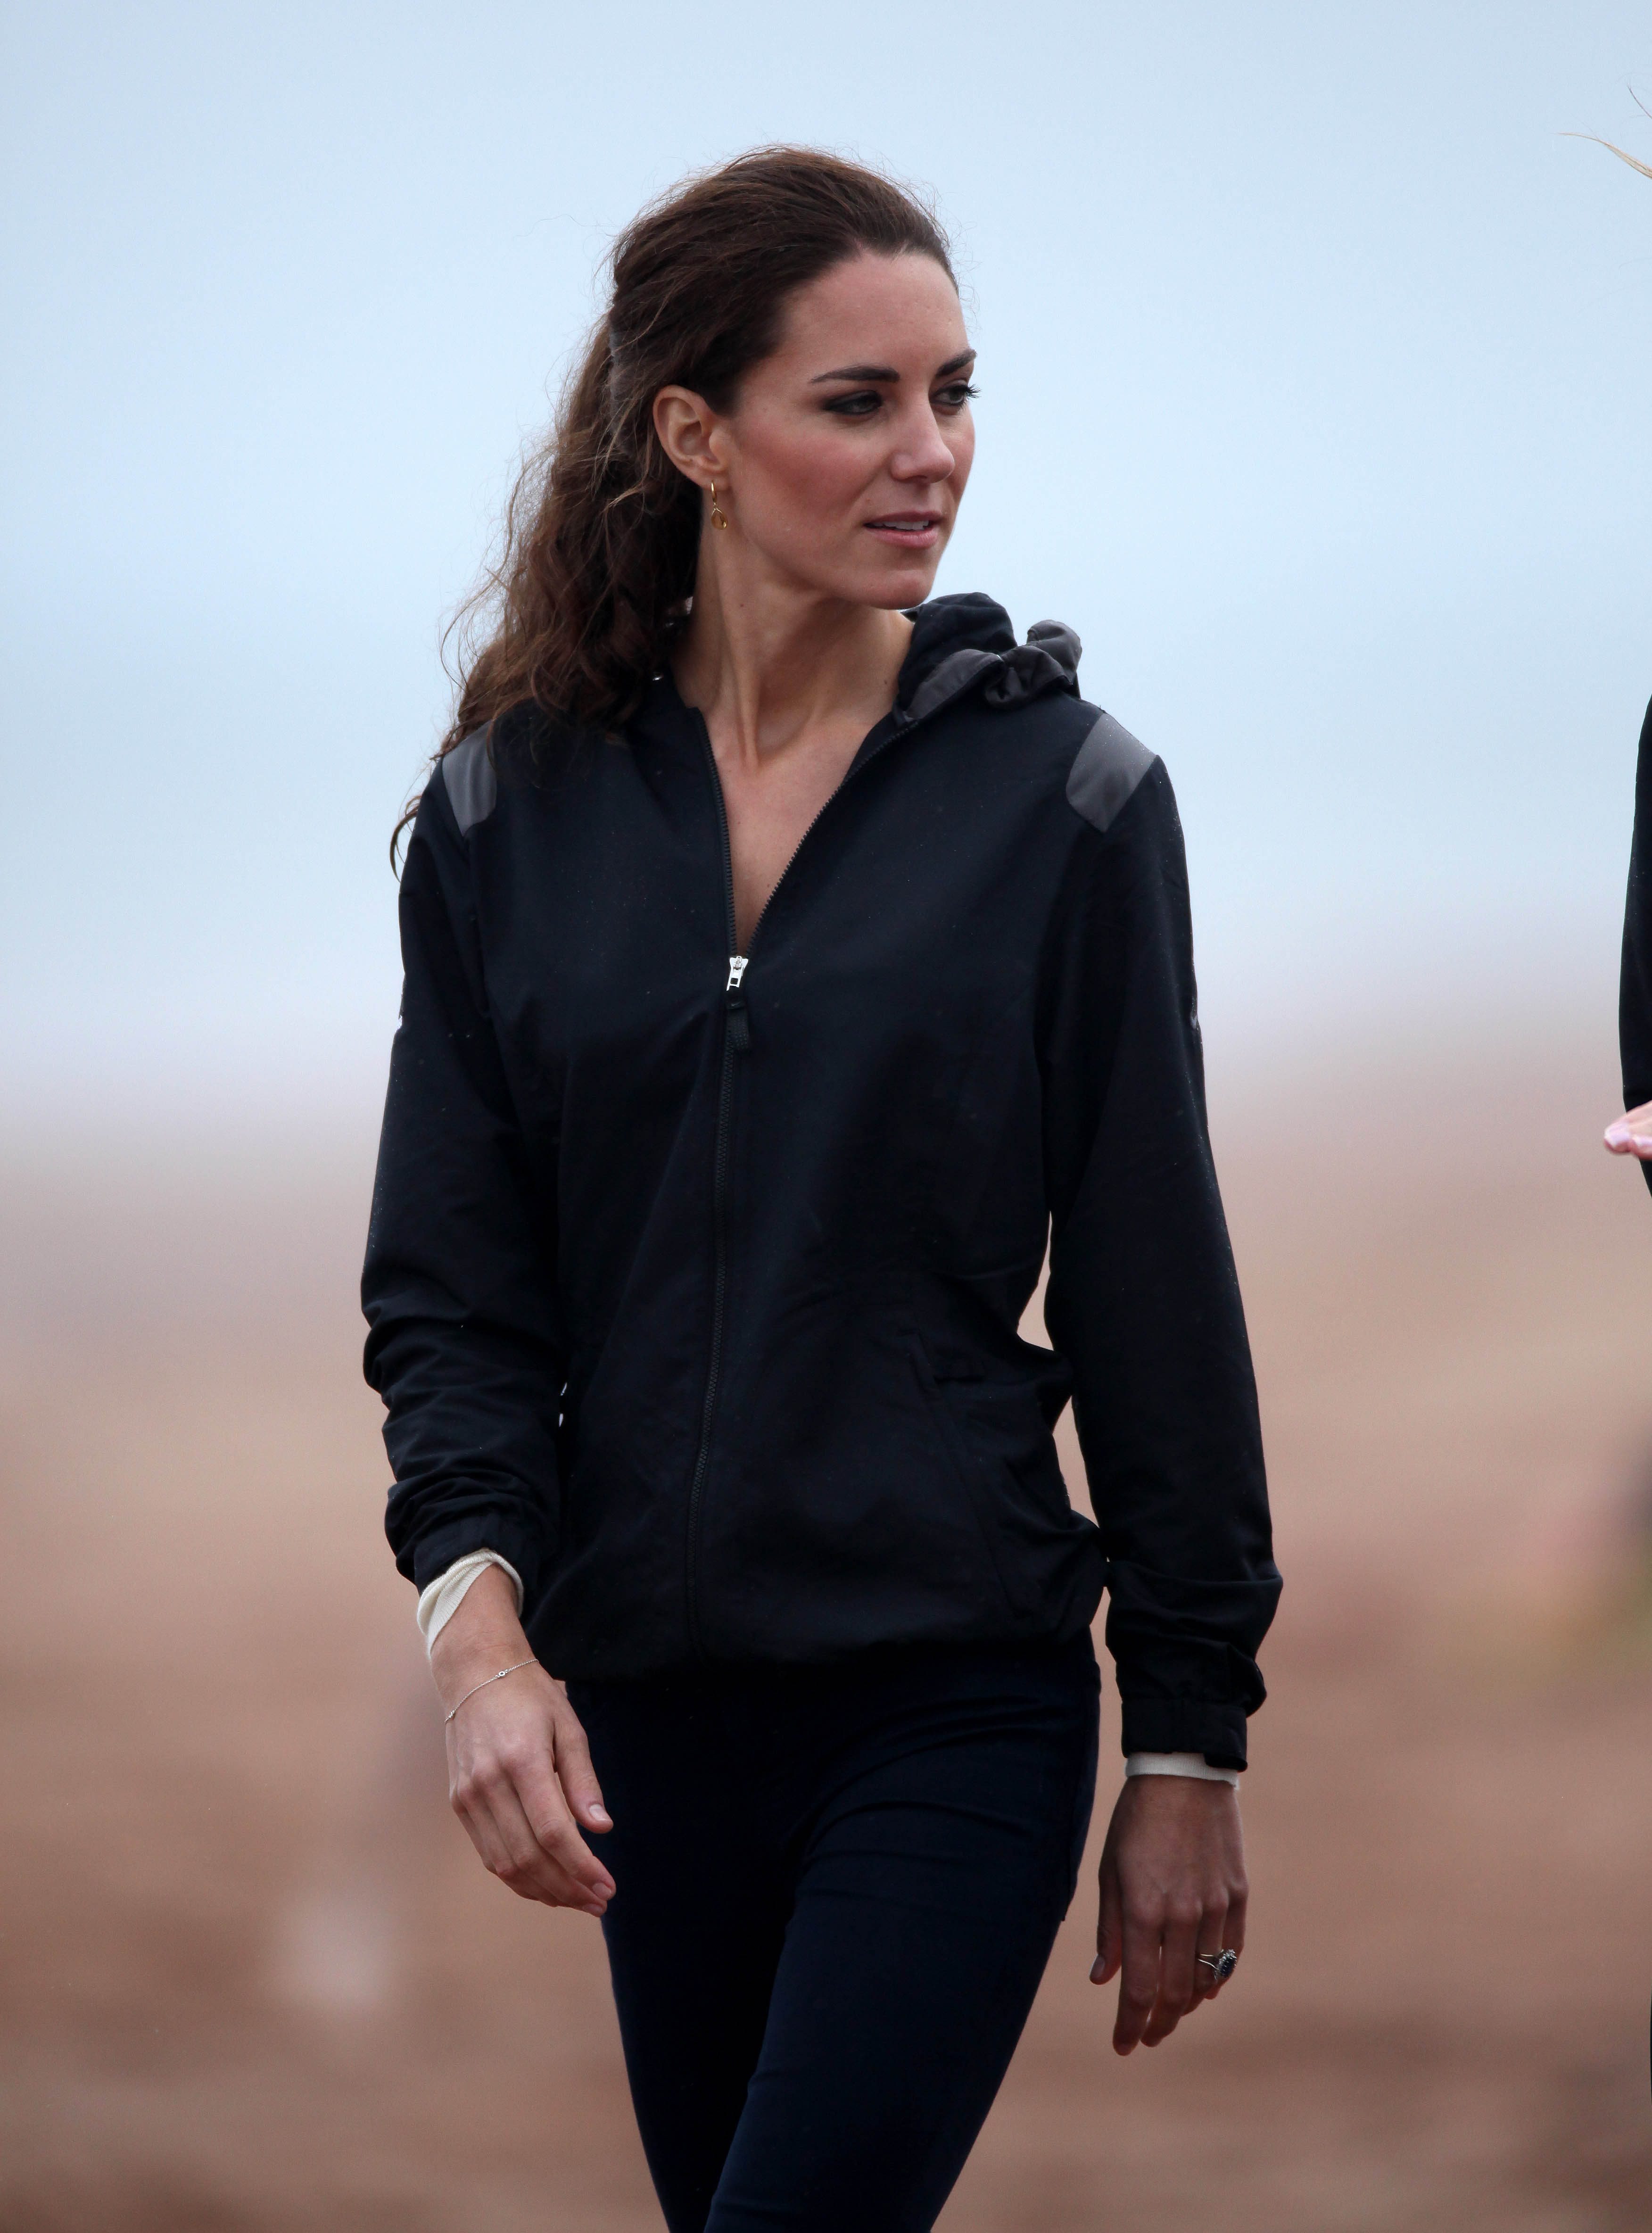 <strong>Athletic Chic</strong>                                   On July 4, 2011, the Duchess visited a beach on Prince Edward Island, Canada, as part of her first overseas tour as a royal. In a departure from her usual style, she went casual in a black track suit and pants.